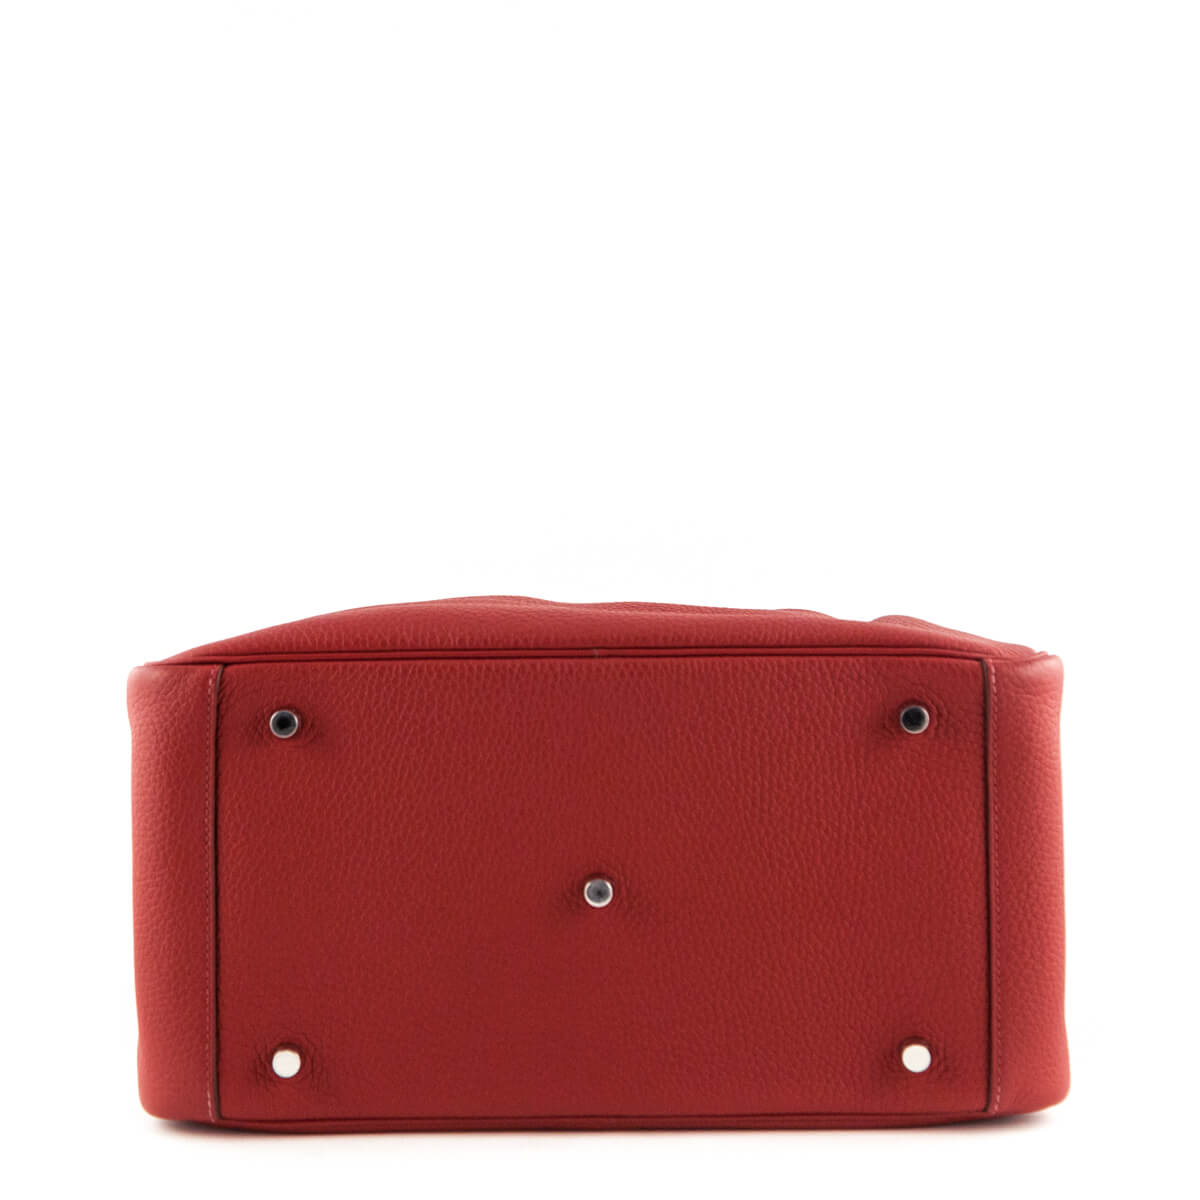 30baccde09e9df ... Hermes Rouge Garance Clemence Lindy 34 - LOVE that BAG - Preowned  Authentic Designer Handbags ...